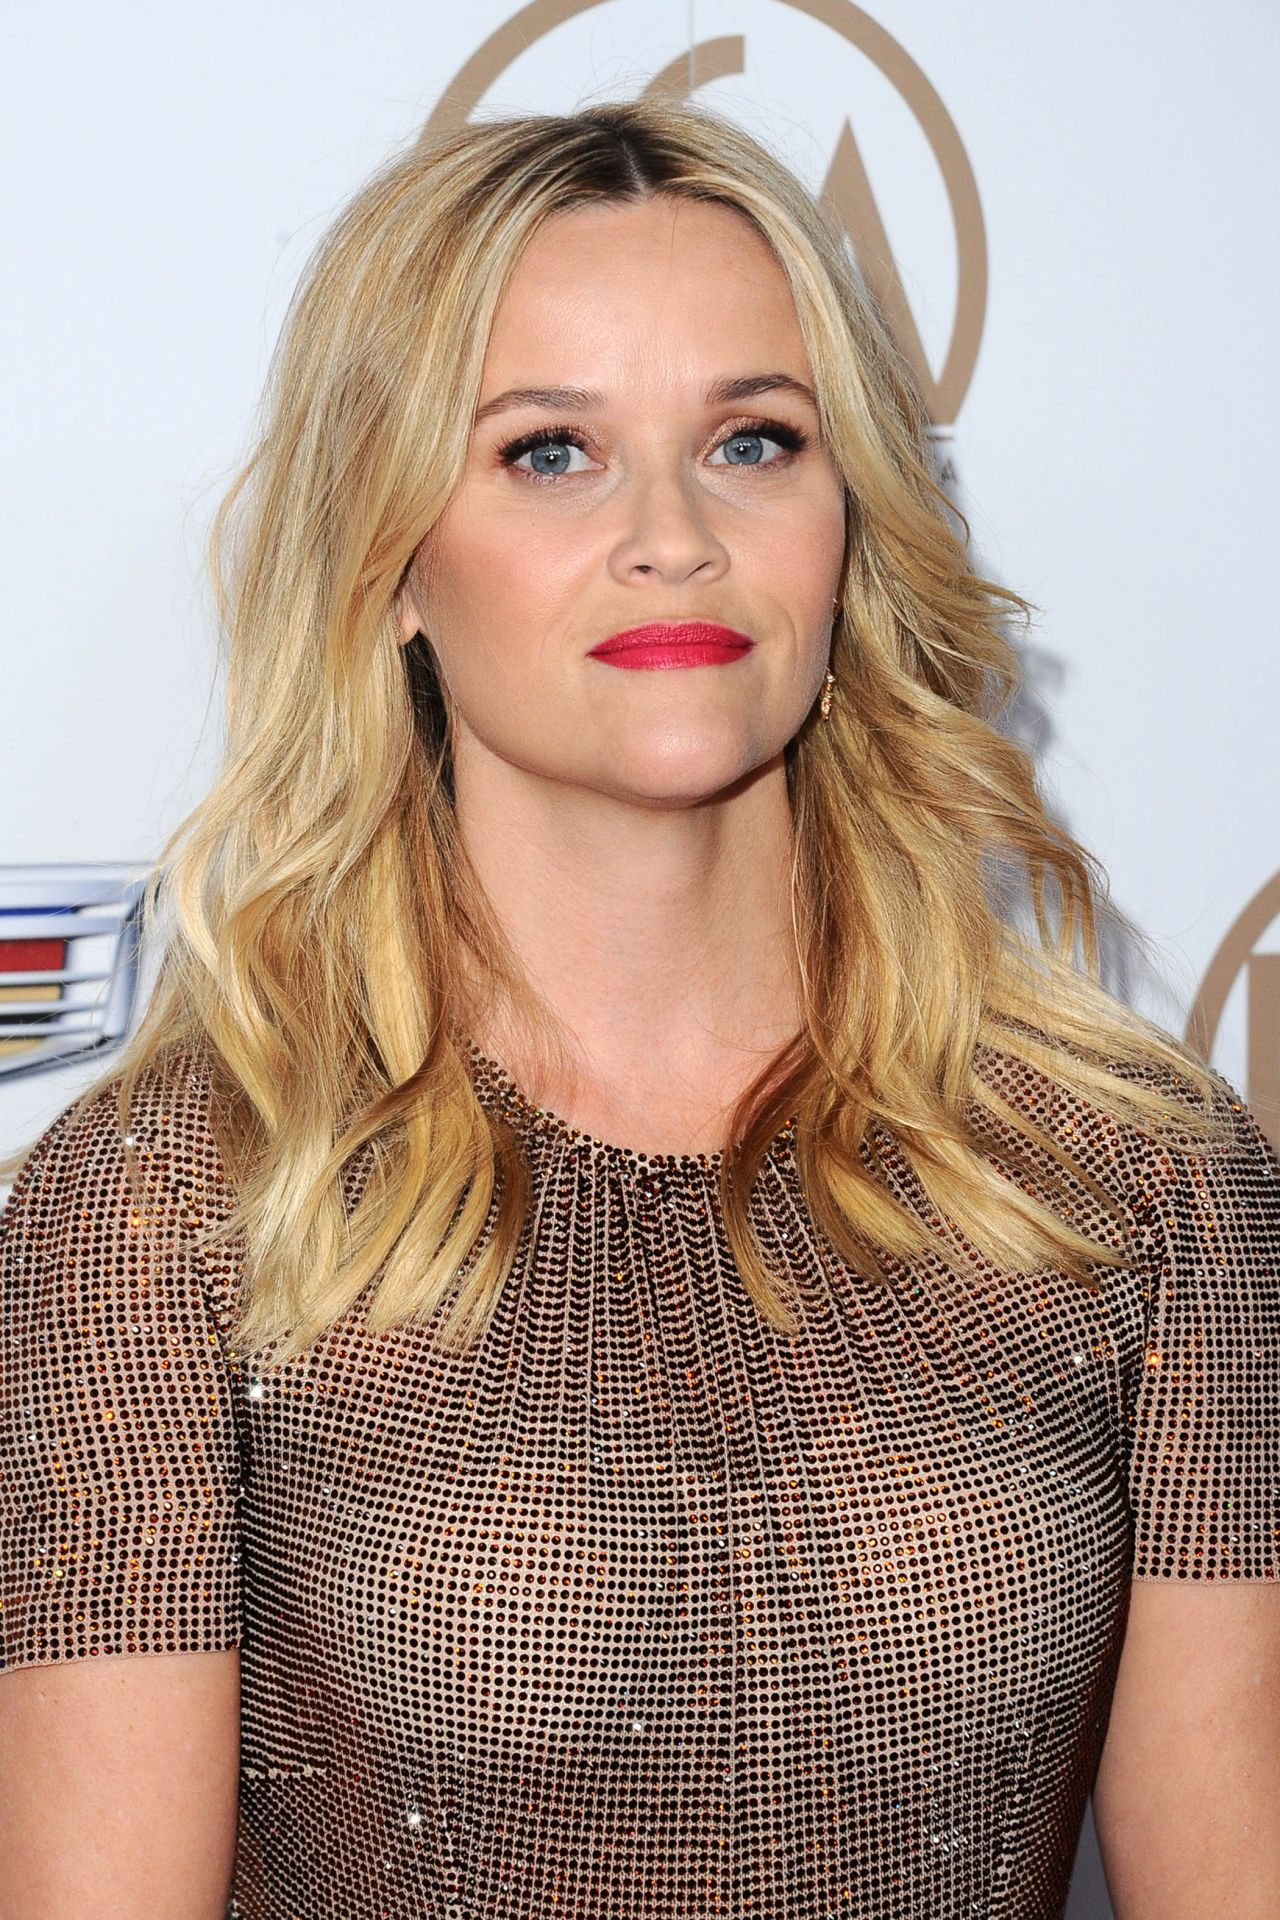 Reese Witherspoon's daughter Ava Phillippe has summer job ...